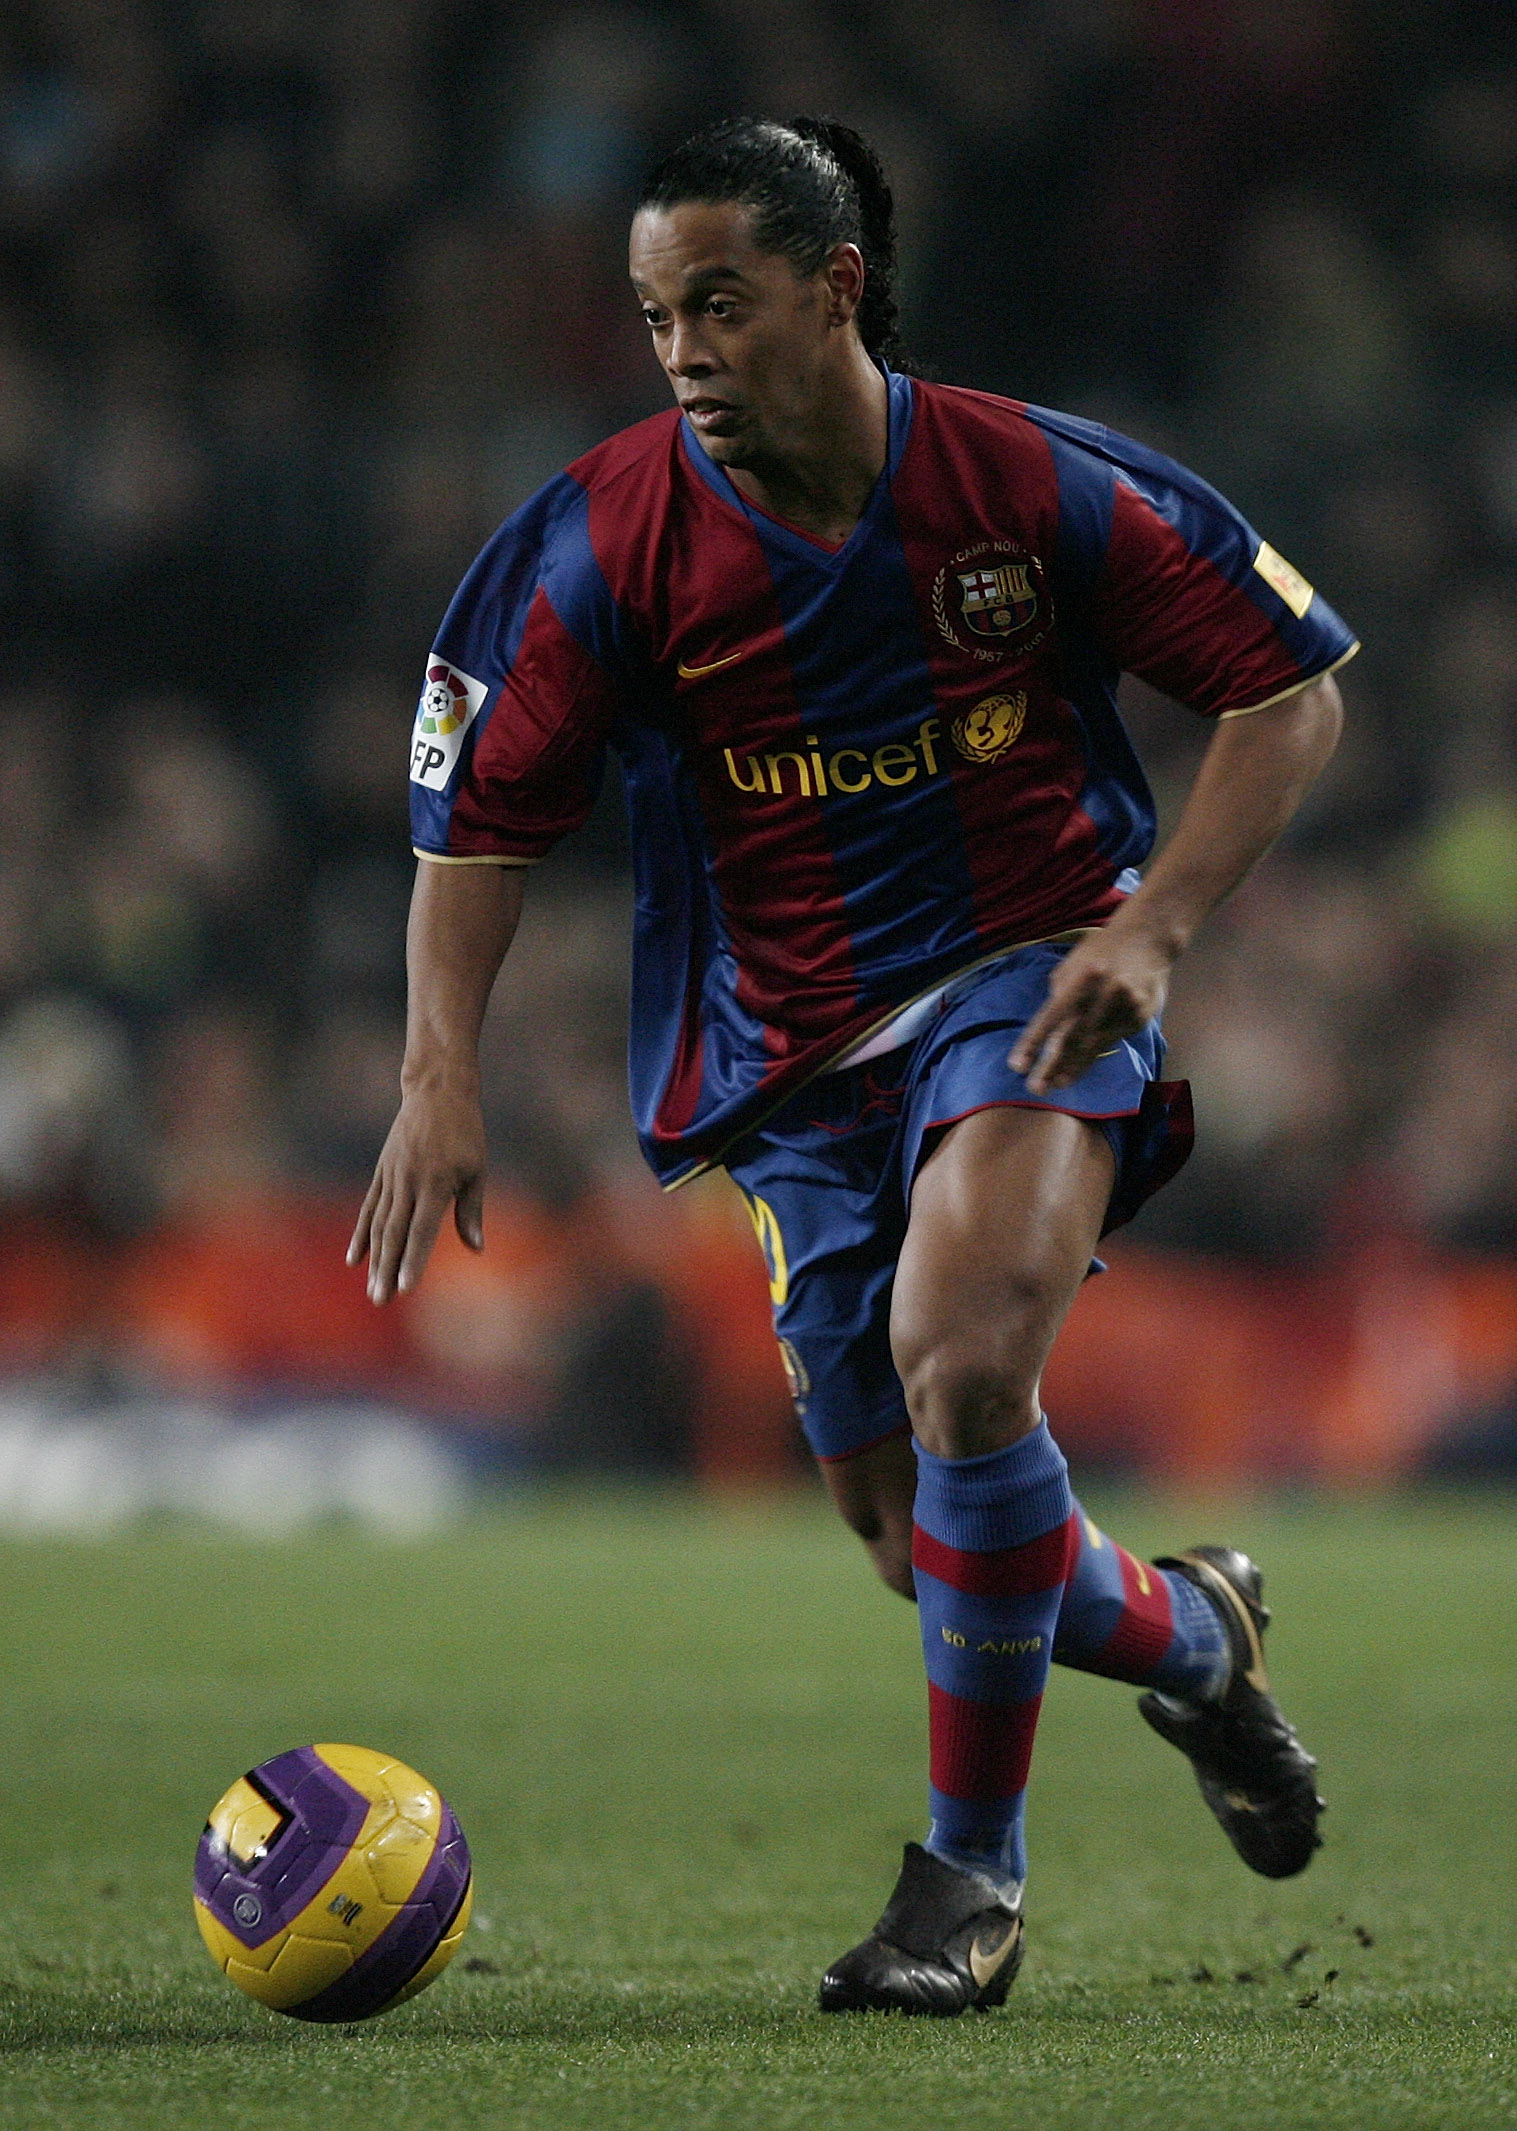 BARCELONA, SPAIN - DECEMBER 23:  Ronaldinho of Barcelona controls the ball during the La Liga match between Barcelona and Real Madrid at the Camp Nou Stadium on December 23, 2007 in Barcelona, Spain. Barcelona lost 'El Clasico' with 1-0.  (Photo by Jasper